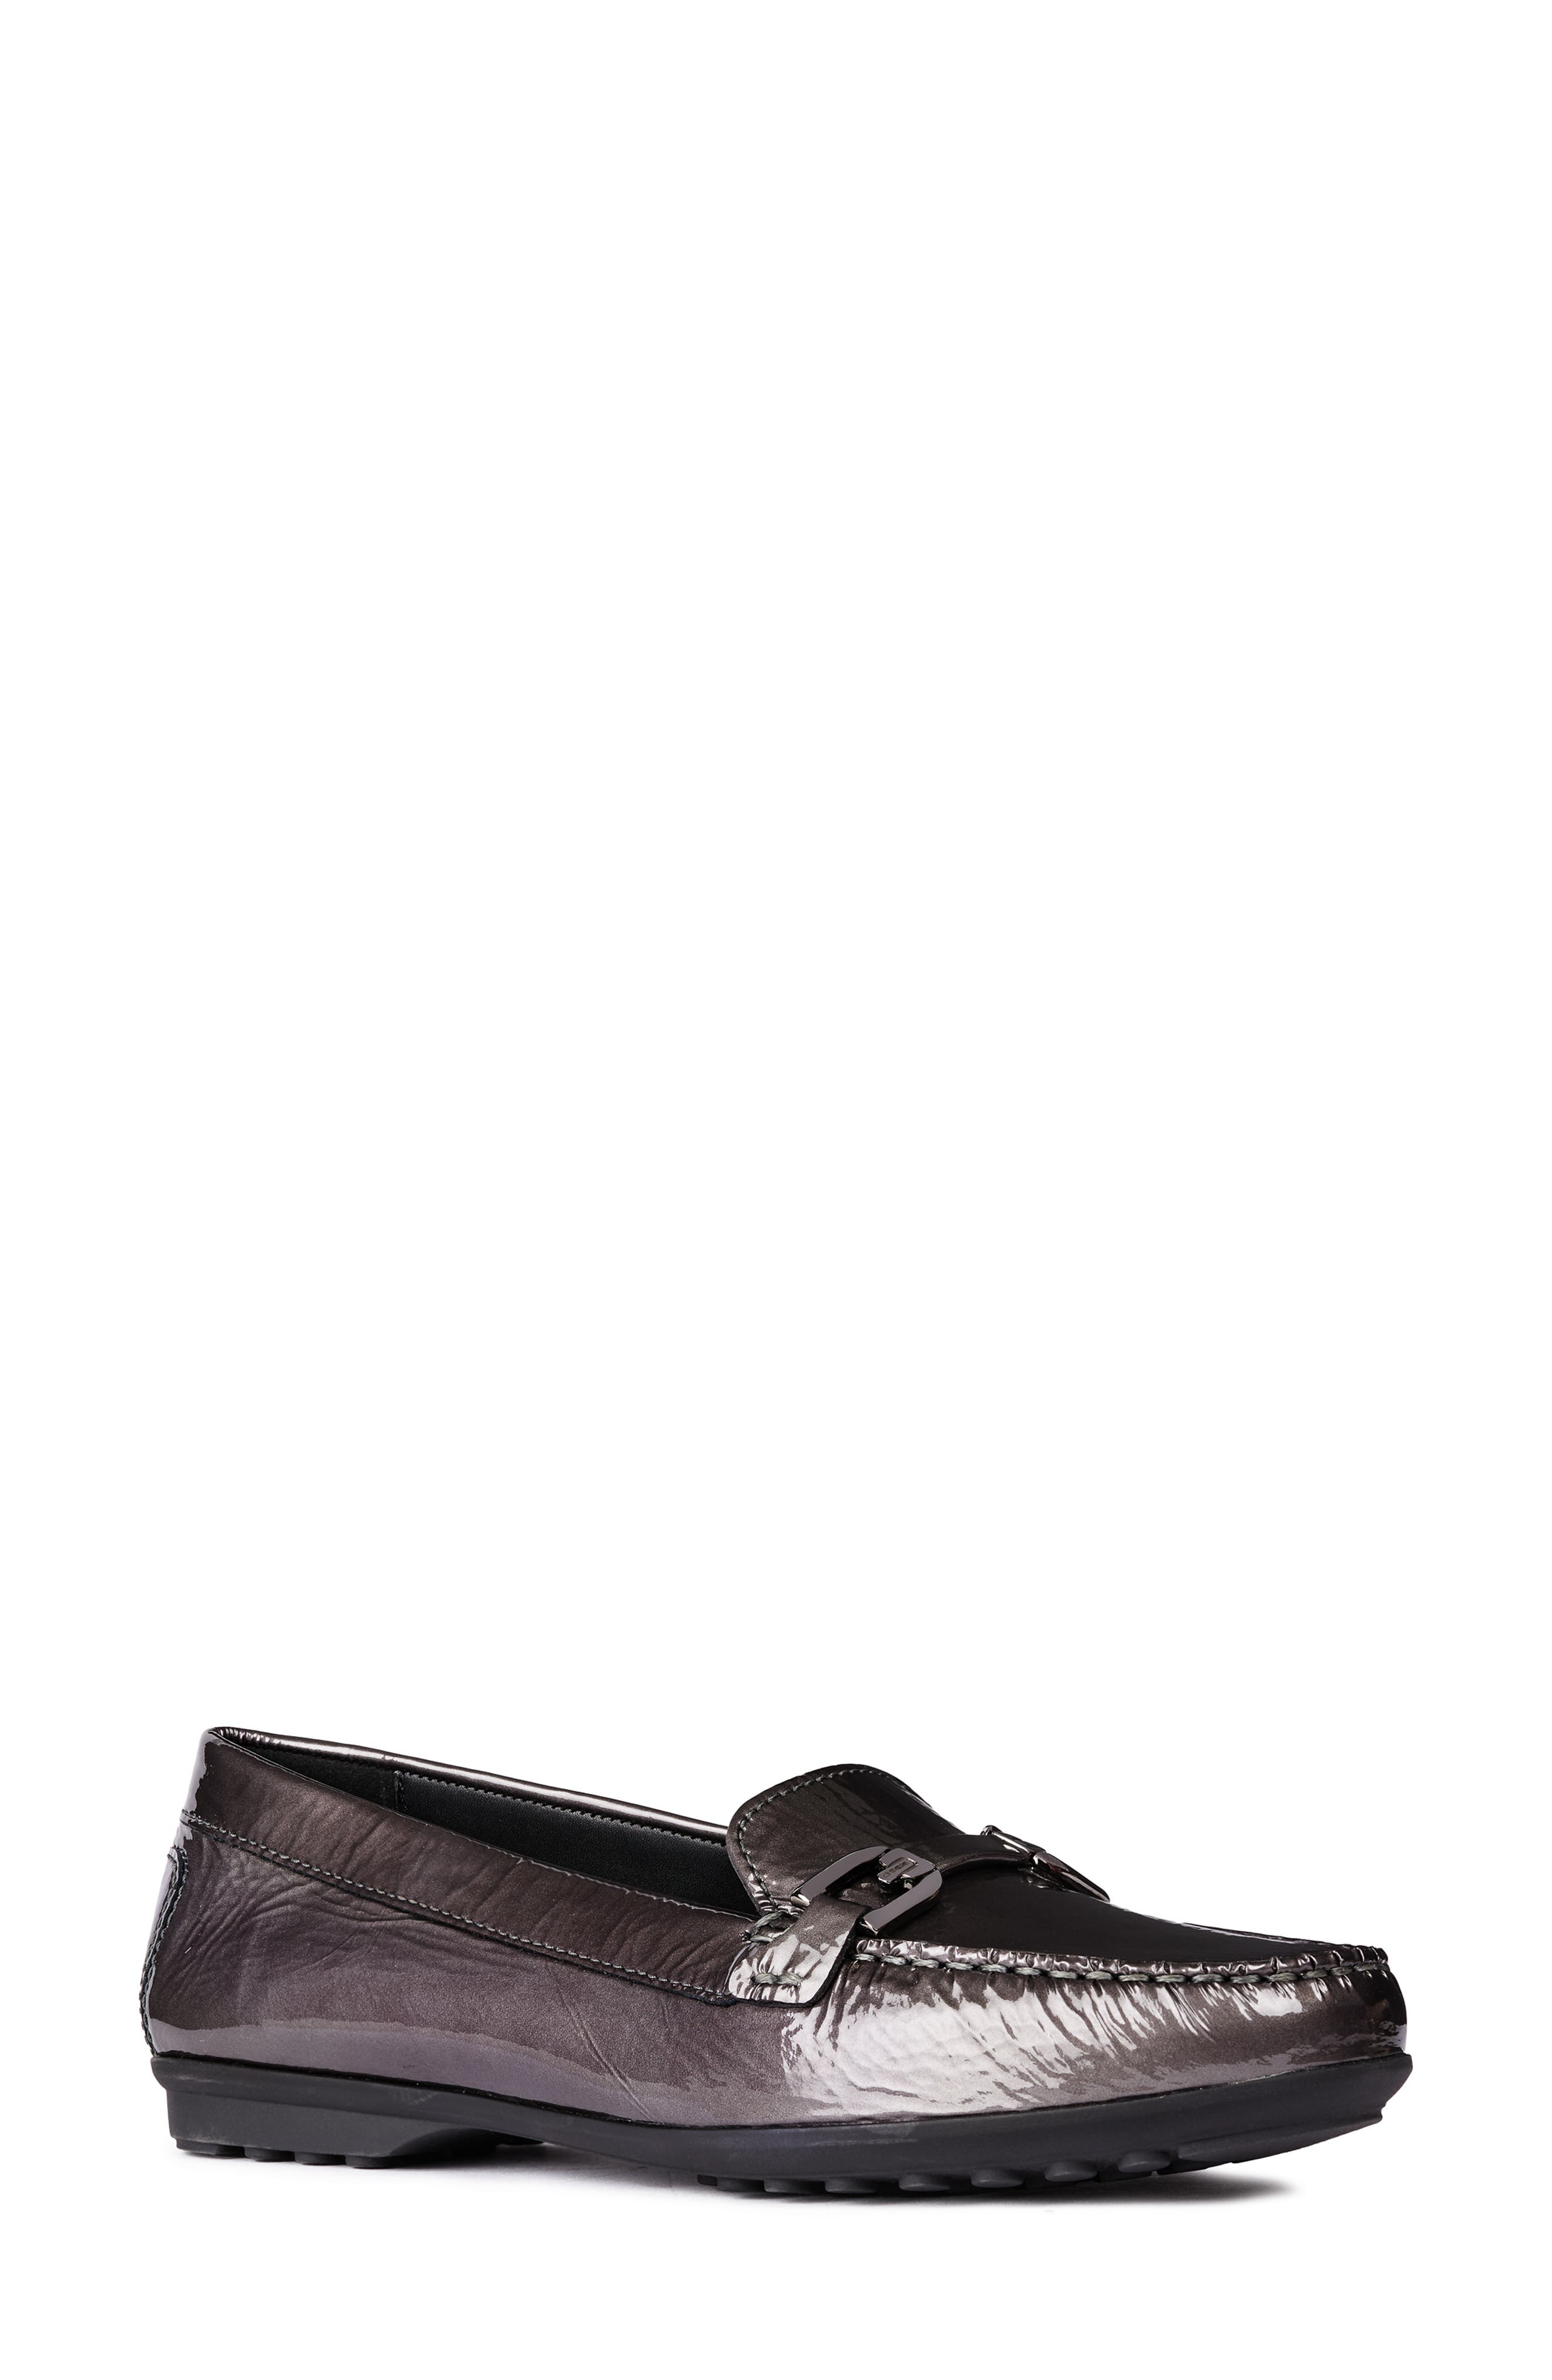 GEOX, Elidia Loafer, Main thumbnail 1, color, DARK GREY LEATHER